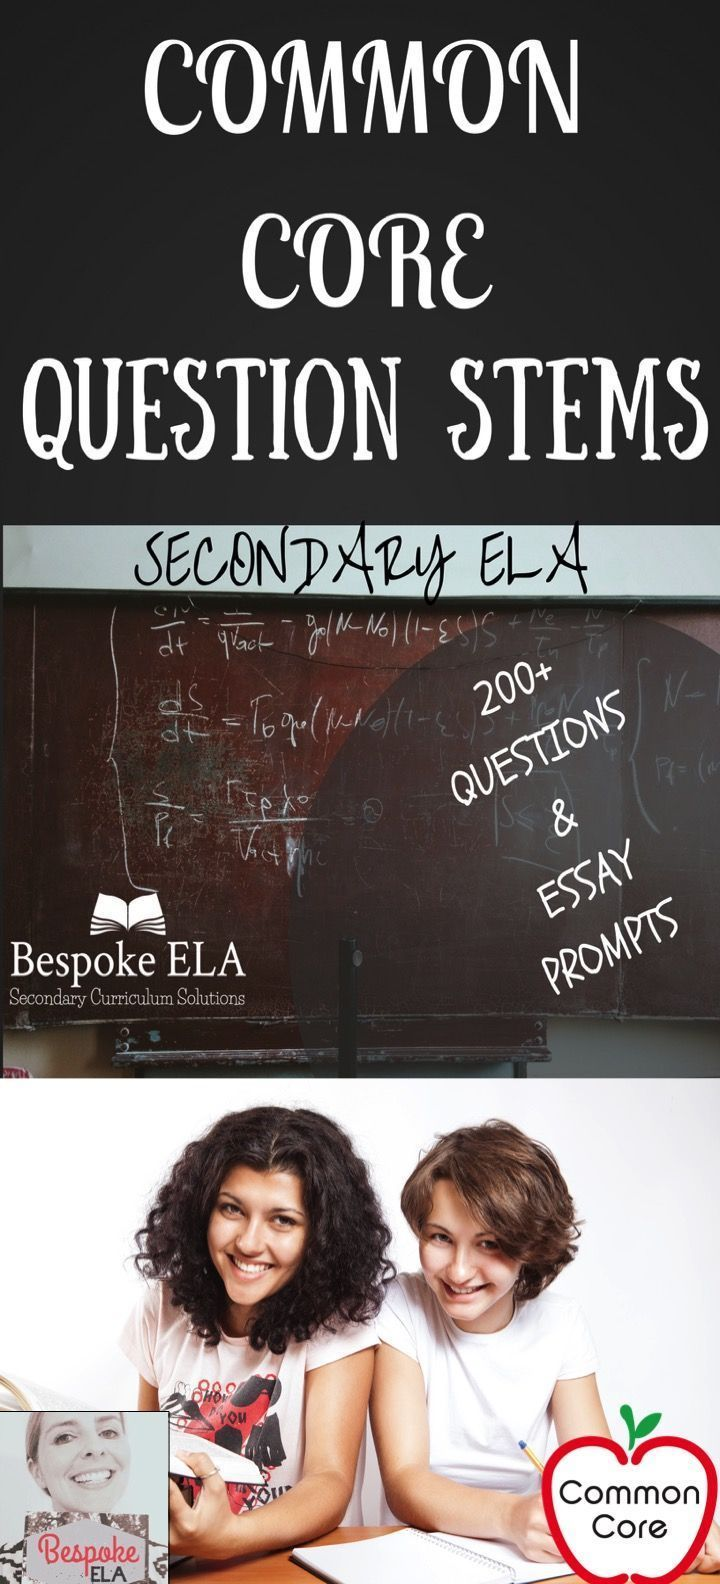 COMMON CORE Question Stems for Secondary ELA.  Includes 200+ question stems to guide assessment, discussion, and analysis in secondary english language arts.  This item also includes essay prompts that target the Common Core Standards.  By Bespoke ELA